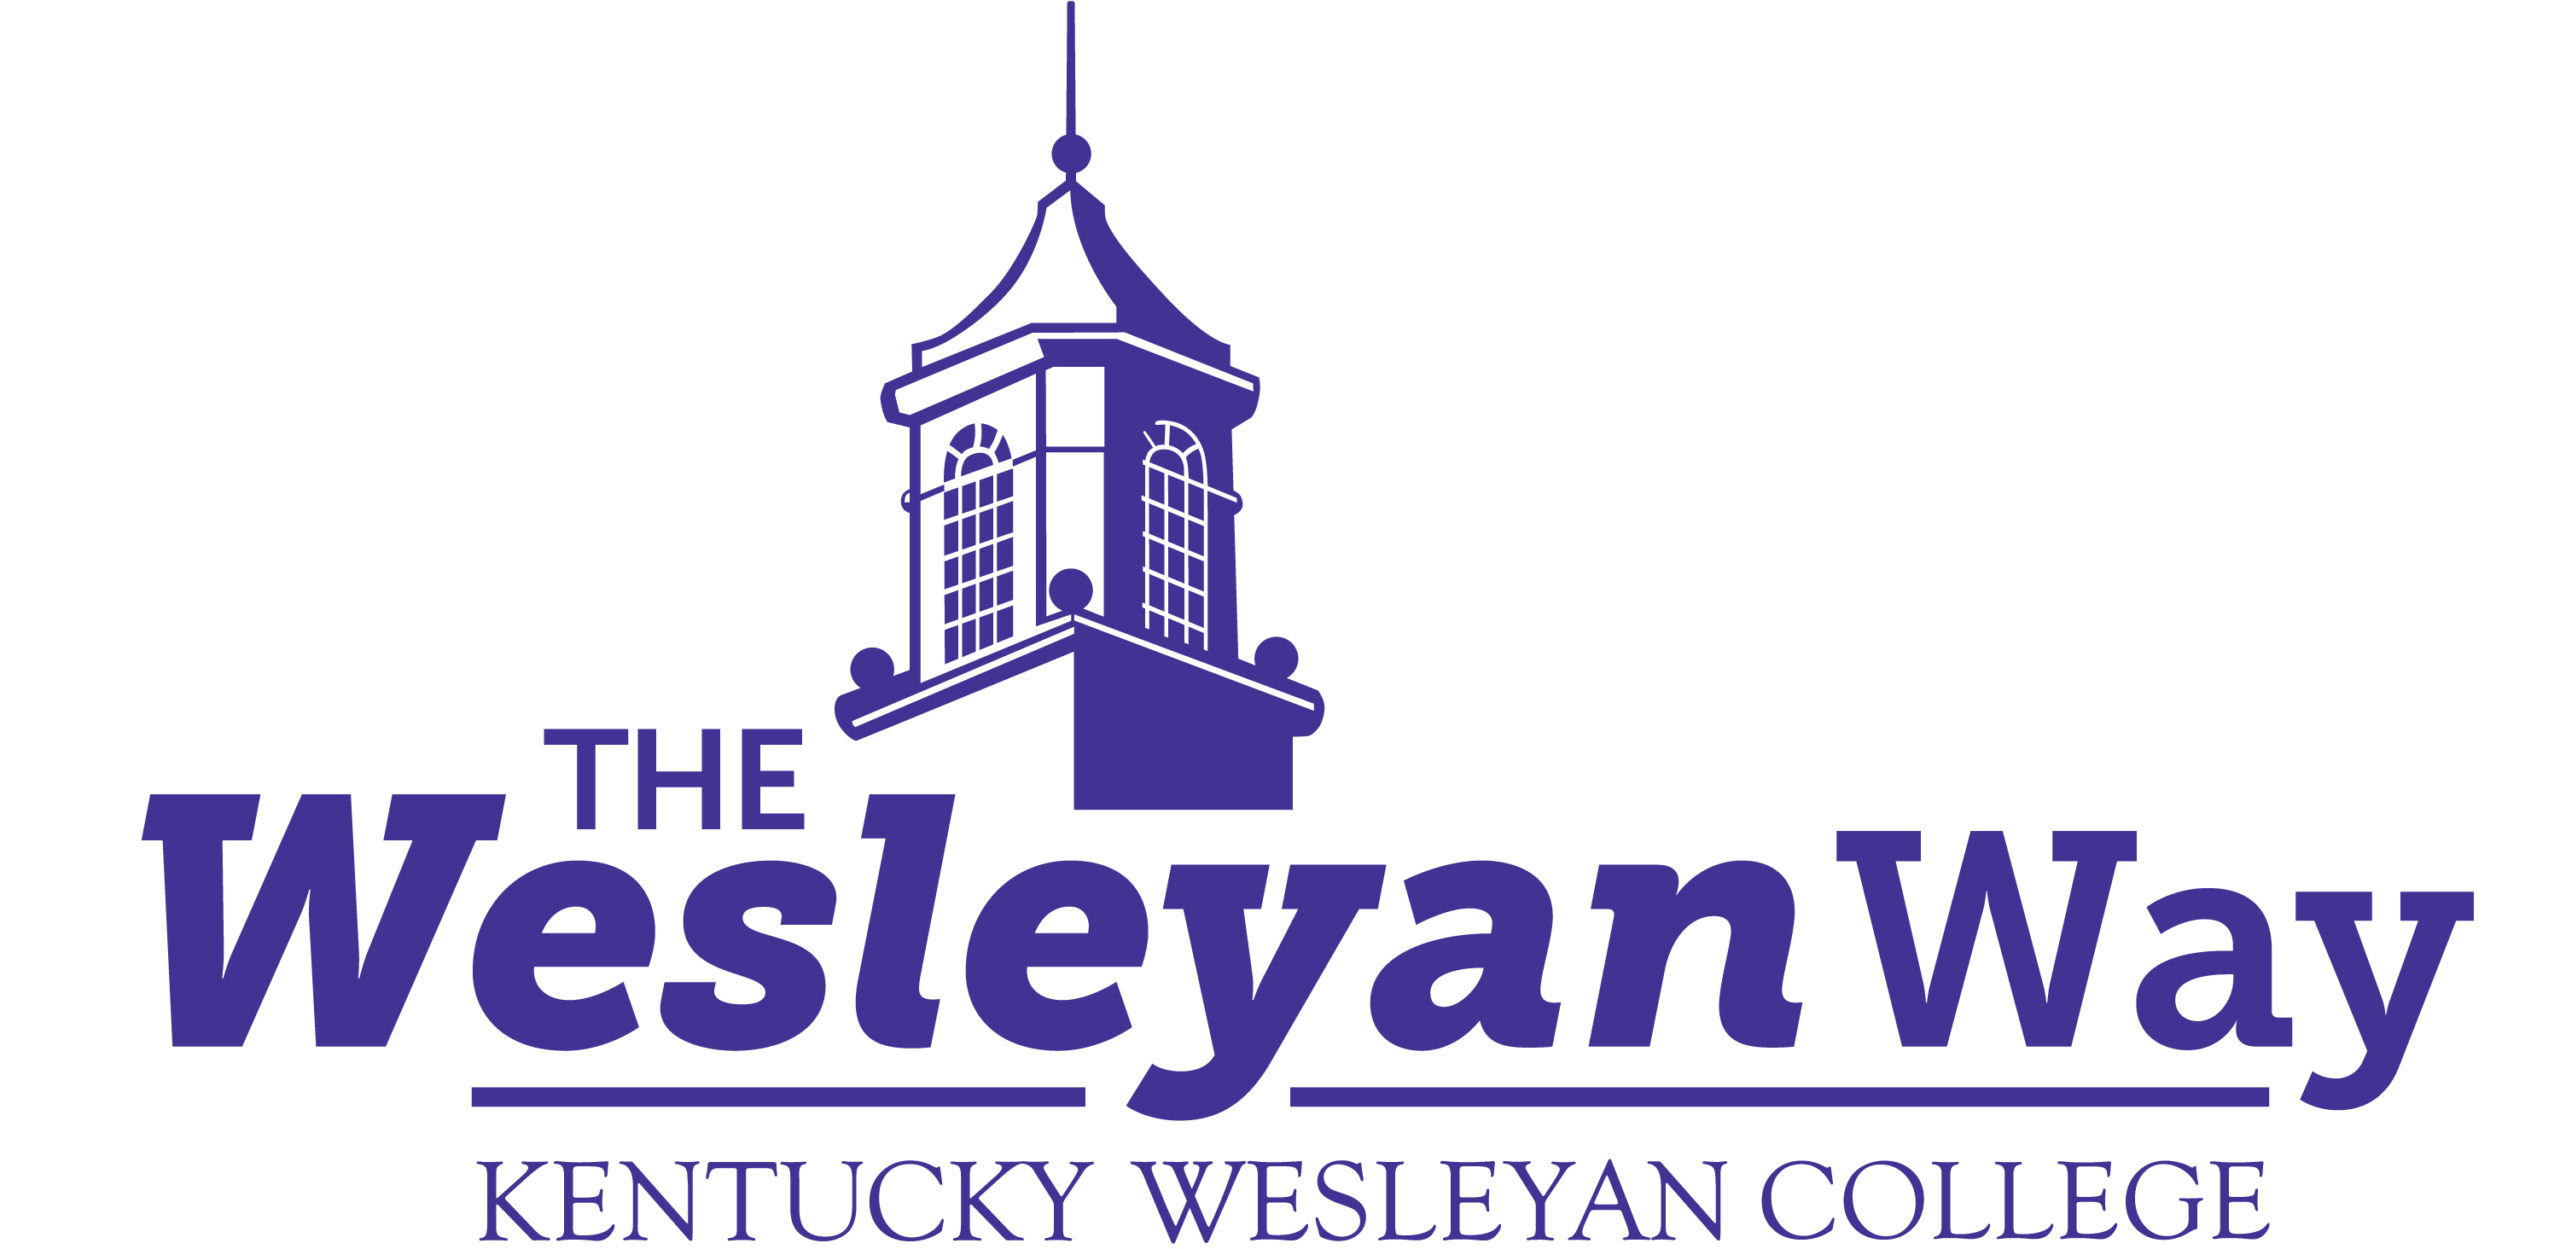 Kentucky Wesleyan recognized in #GivingTuesday case study